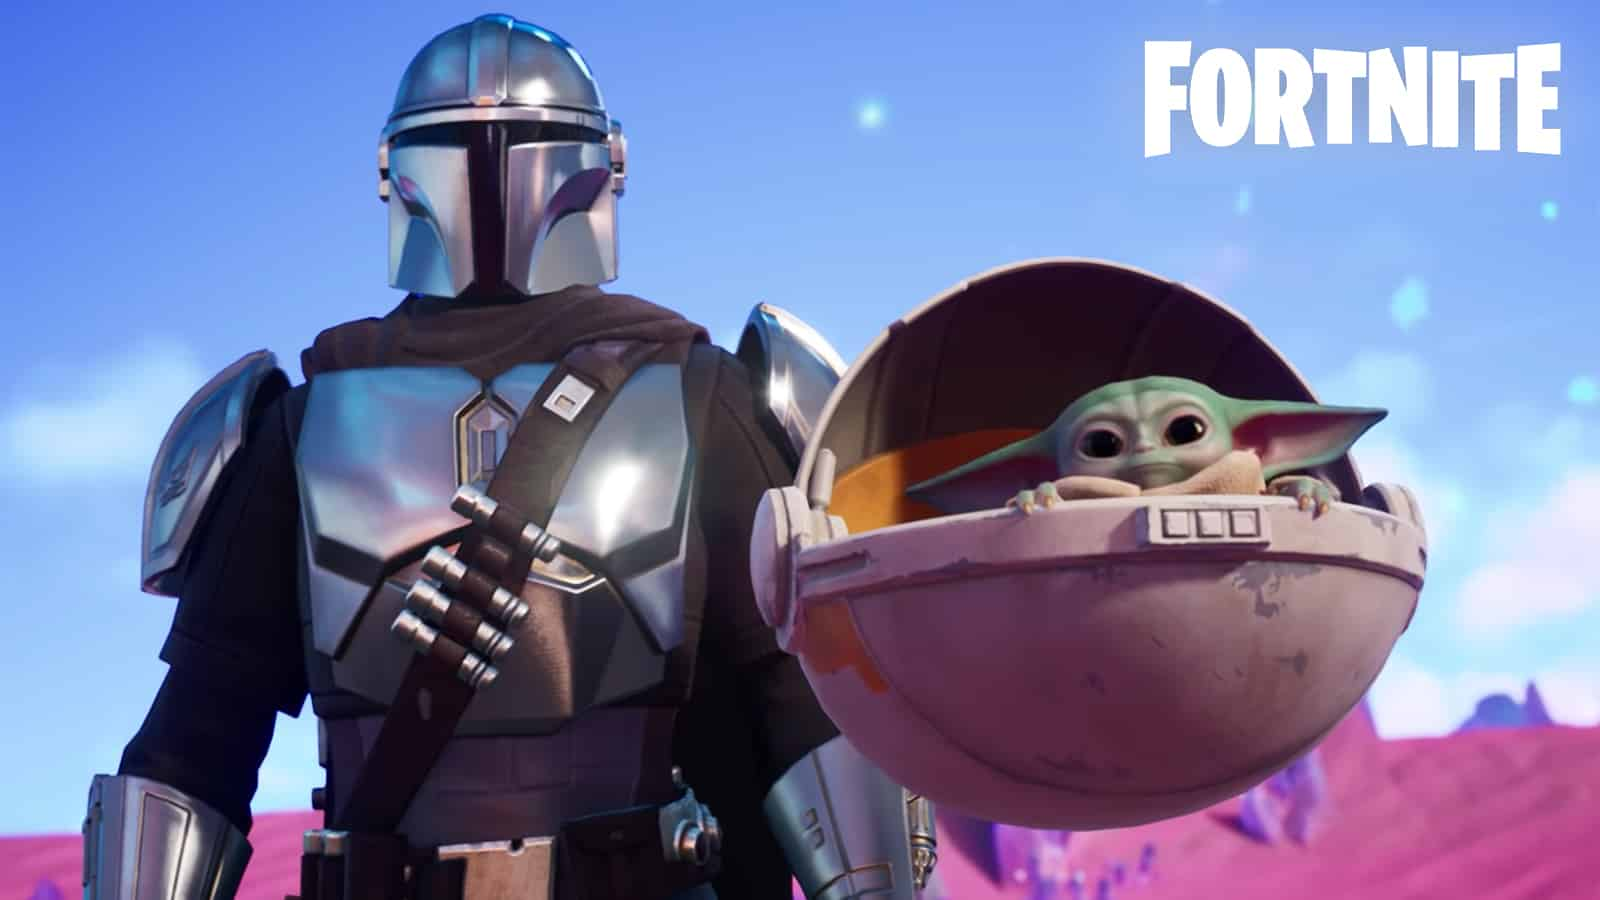 Football is coming to Fortnite this week